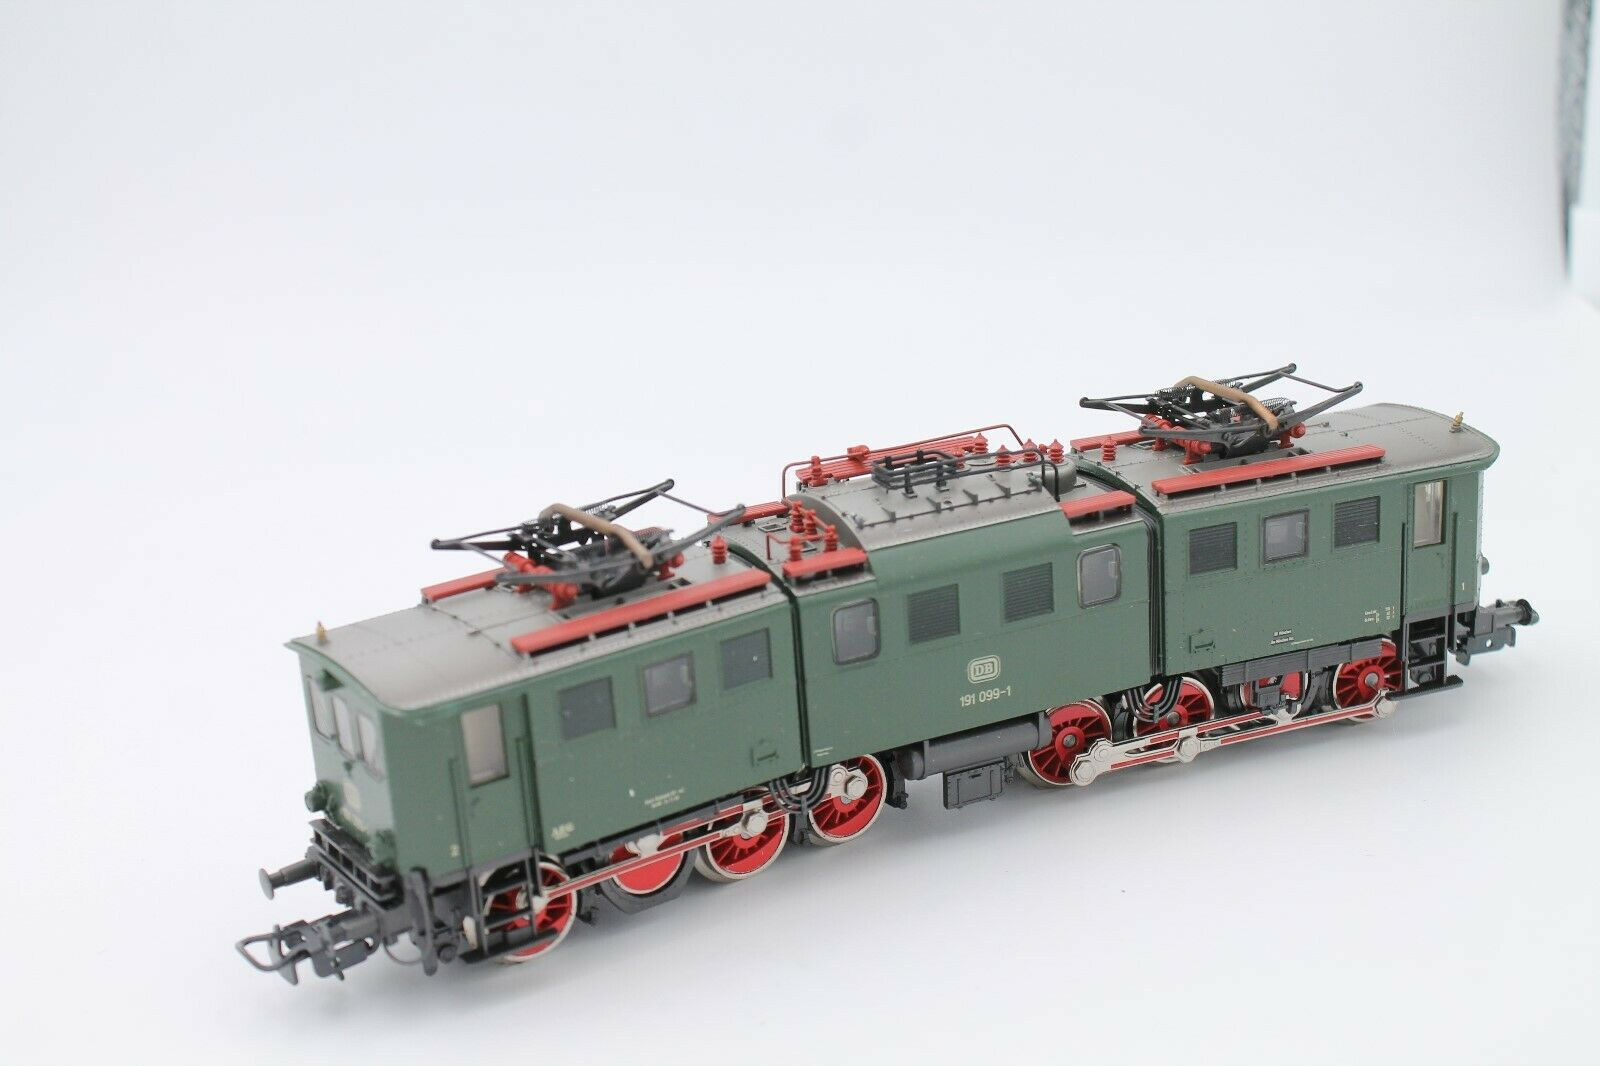 Märklin h0  3629   Train Locomotive BR 191  DIGITAL  Neuf dans sa boîte  magasin discount